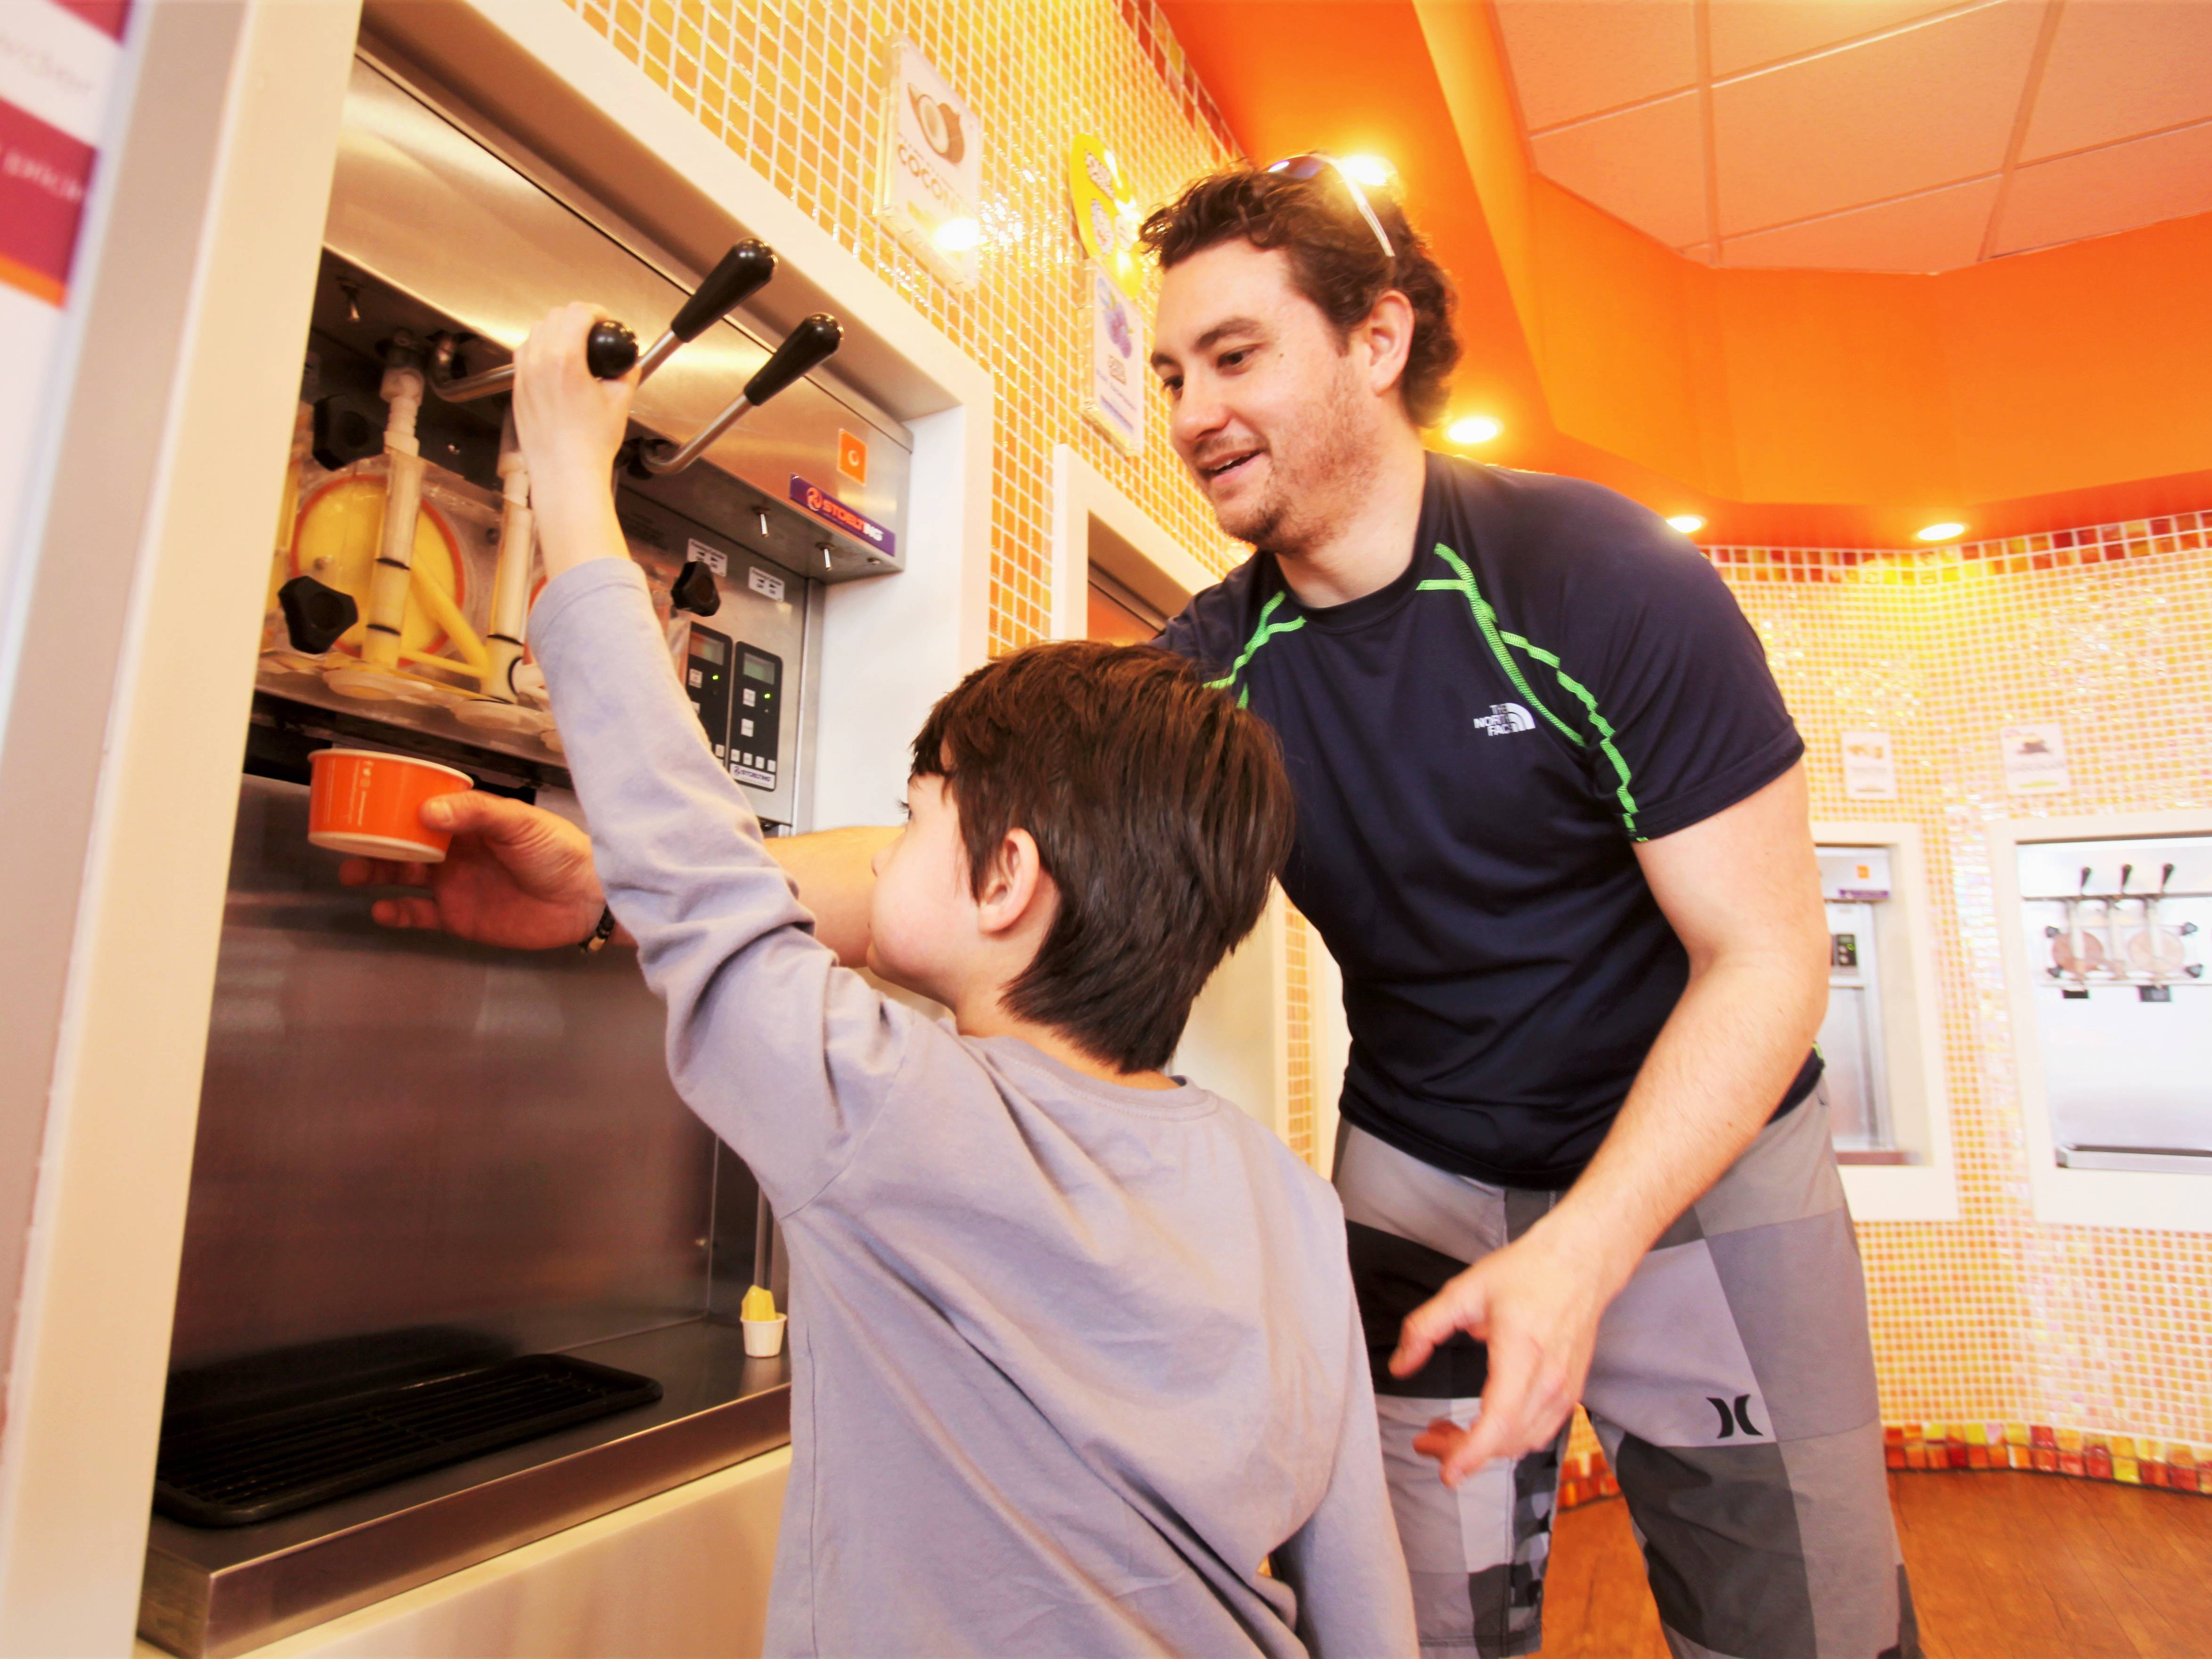 Five-year-old Kade Stenquist gets frozen yogurt with the help of his dad, David, at Orange Leaf in Springfield on March 14, 2019.